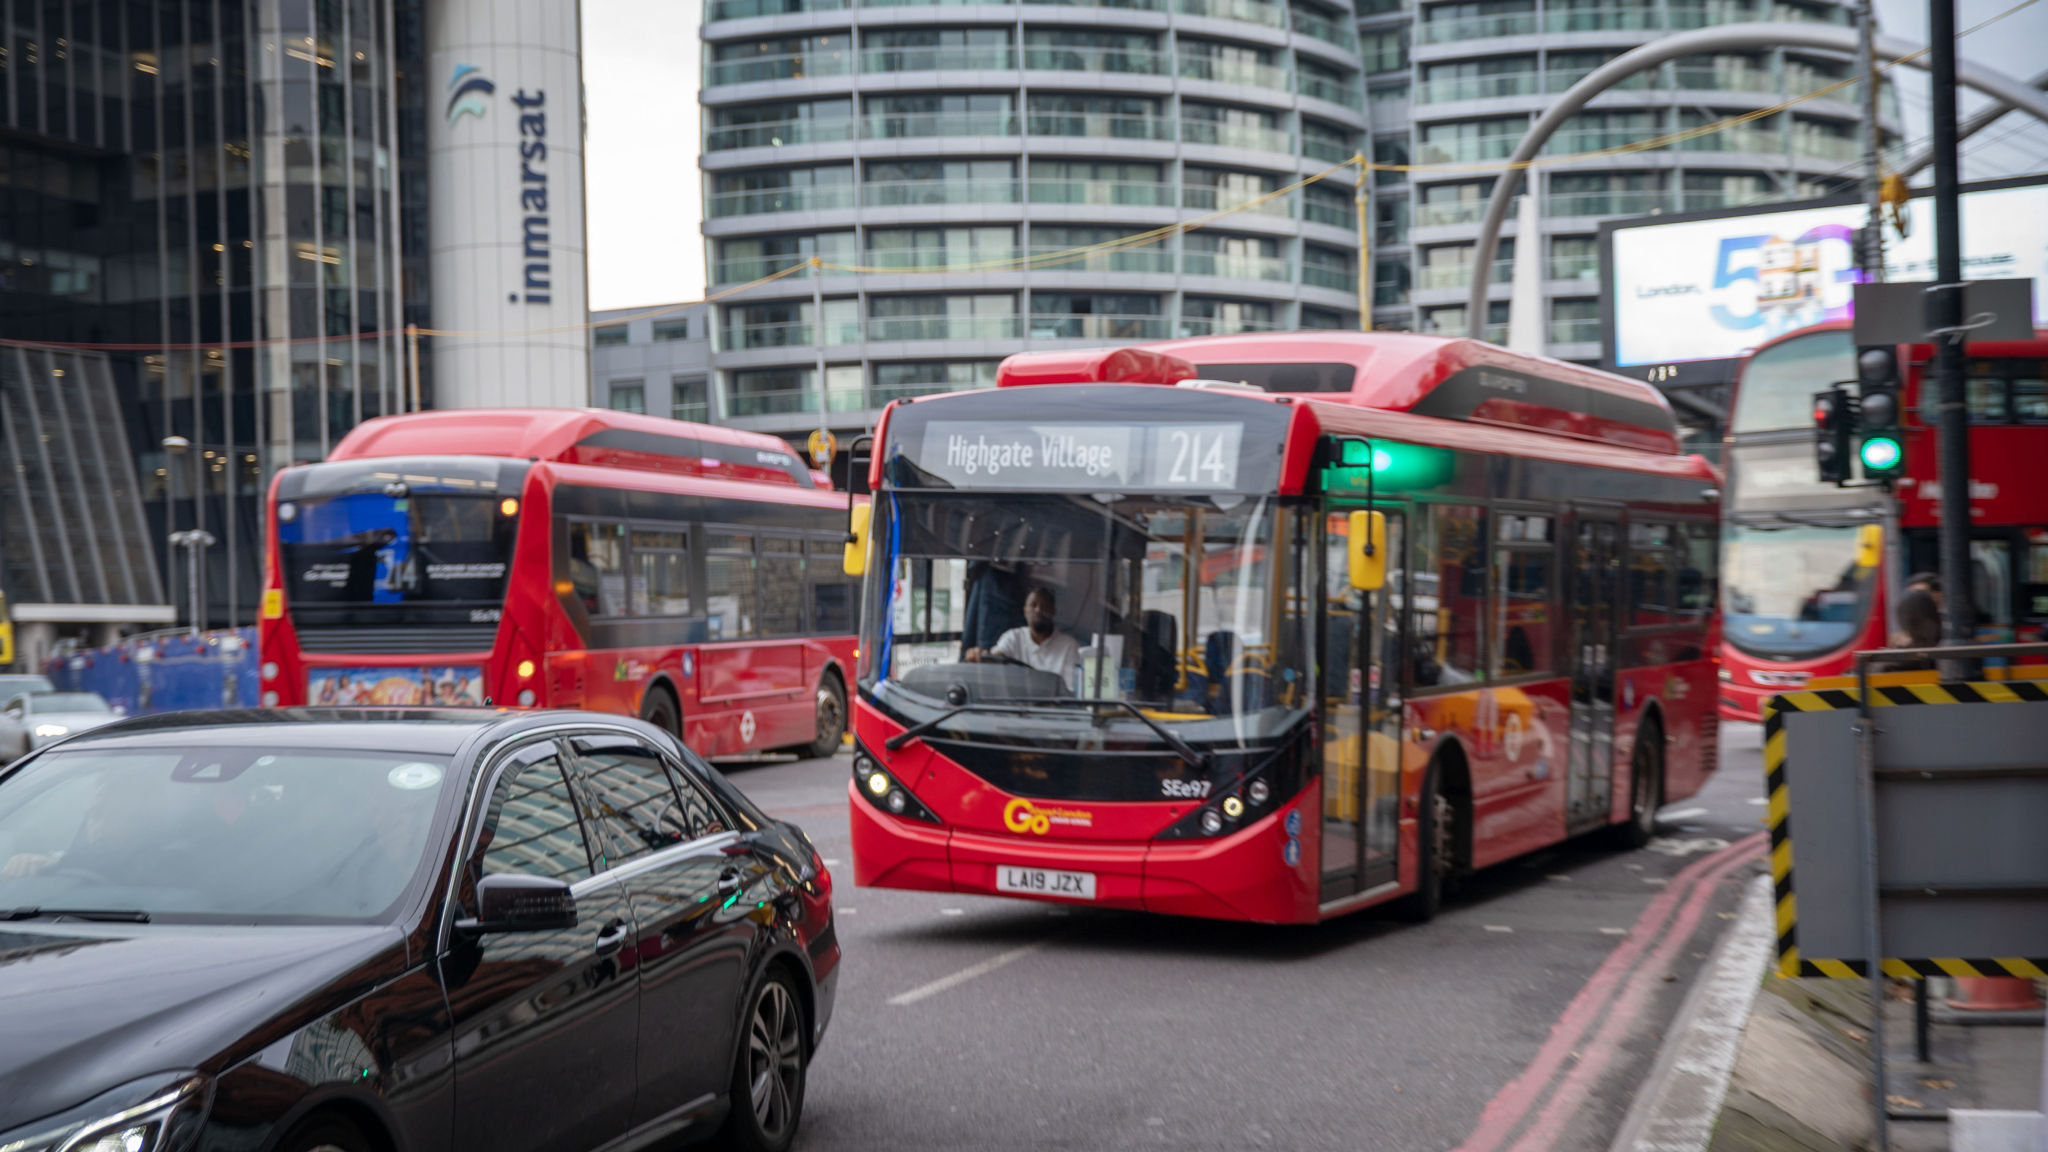 Number 214 to Highgate leads UK's electric bus charge